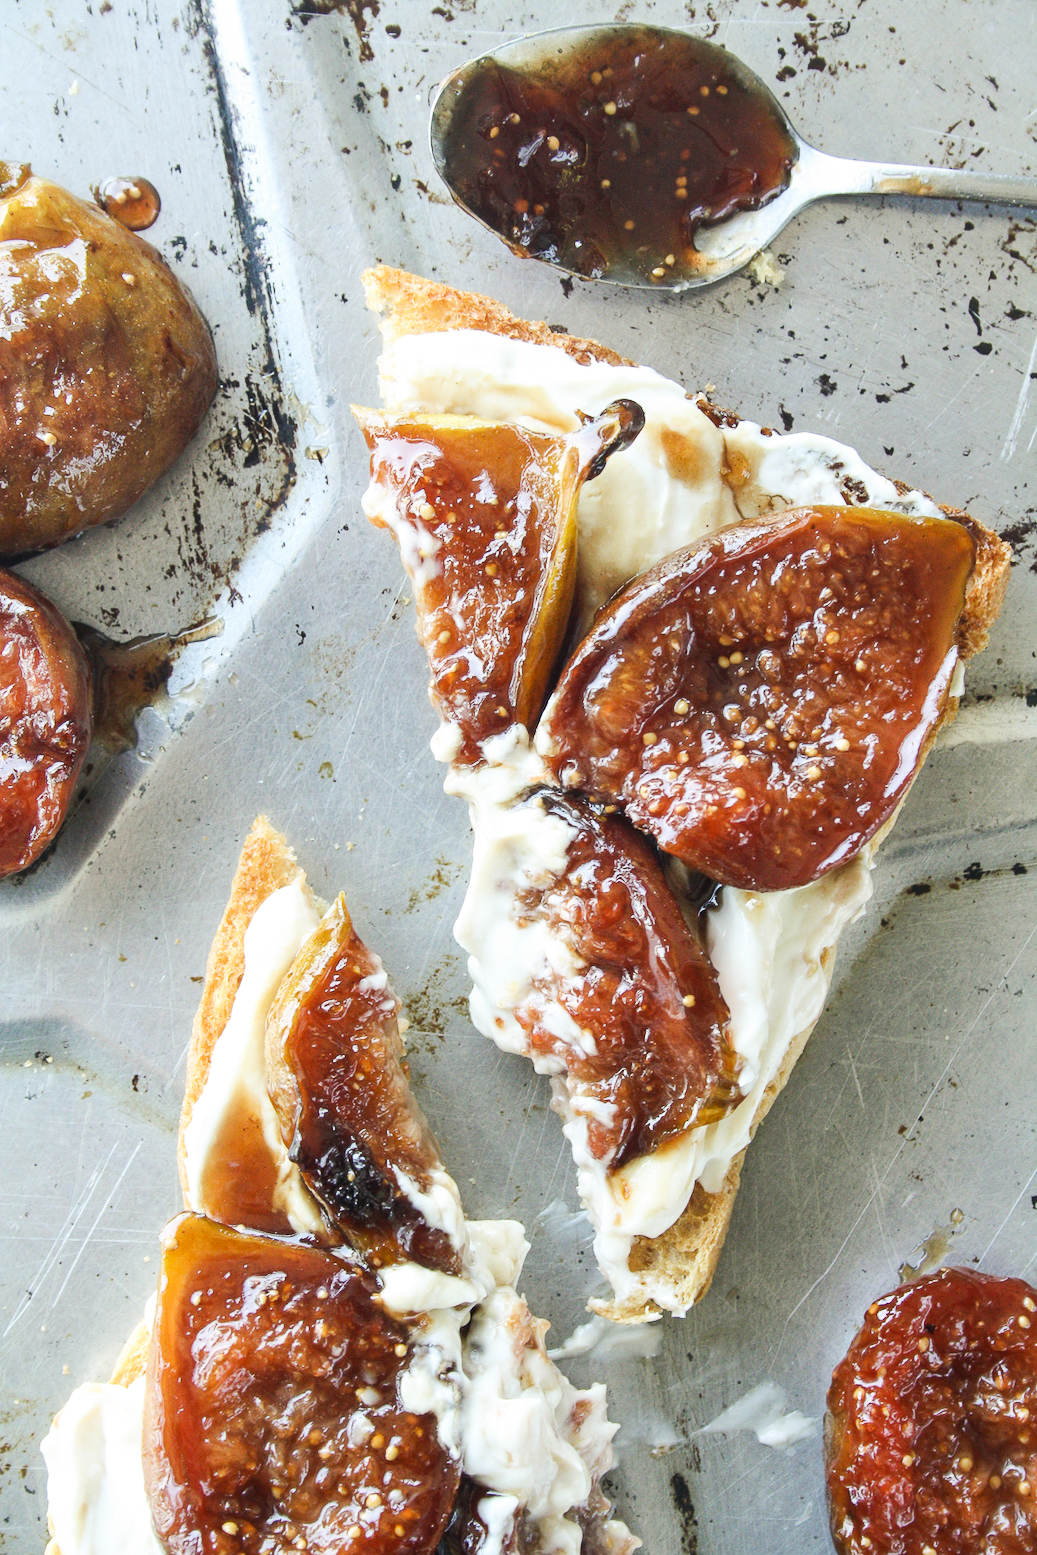 Figs caramelised in honey and balsamic vinegar, served with honey infused hung yogurt on toast!